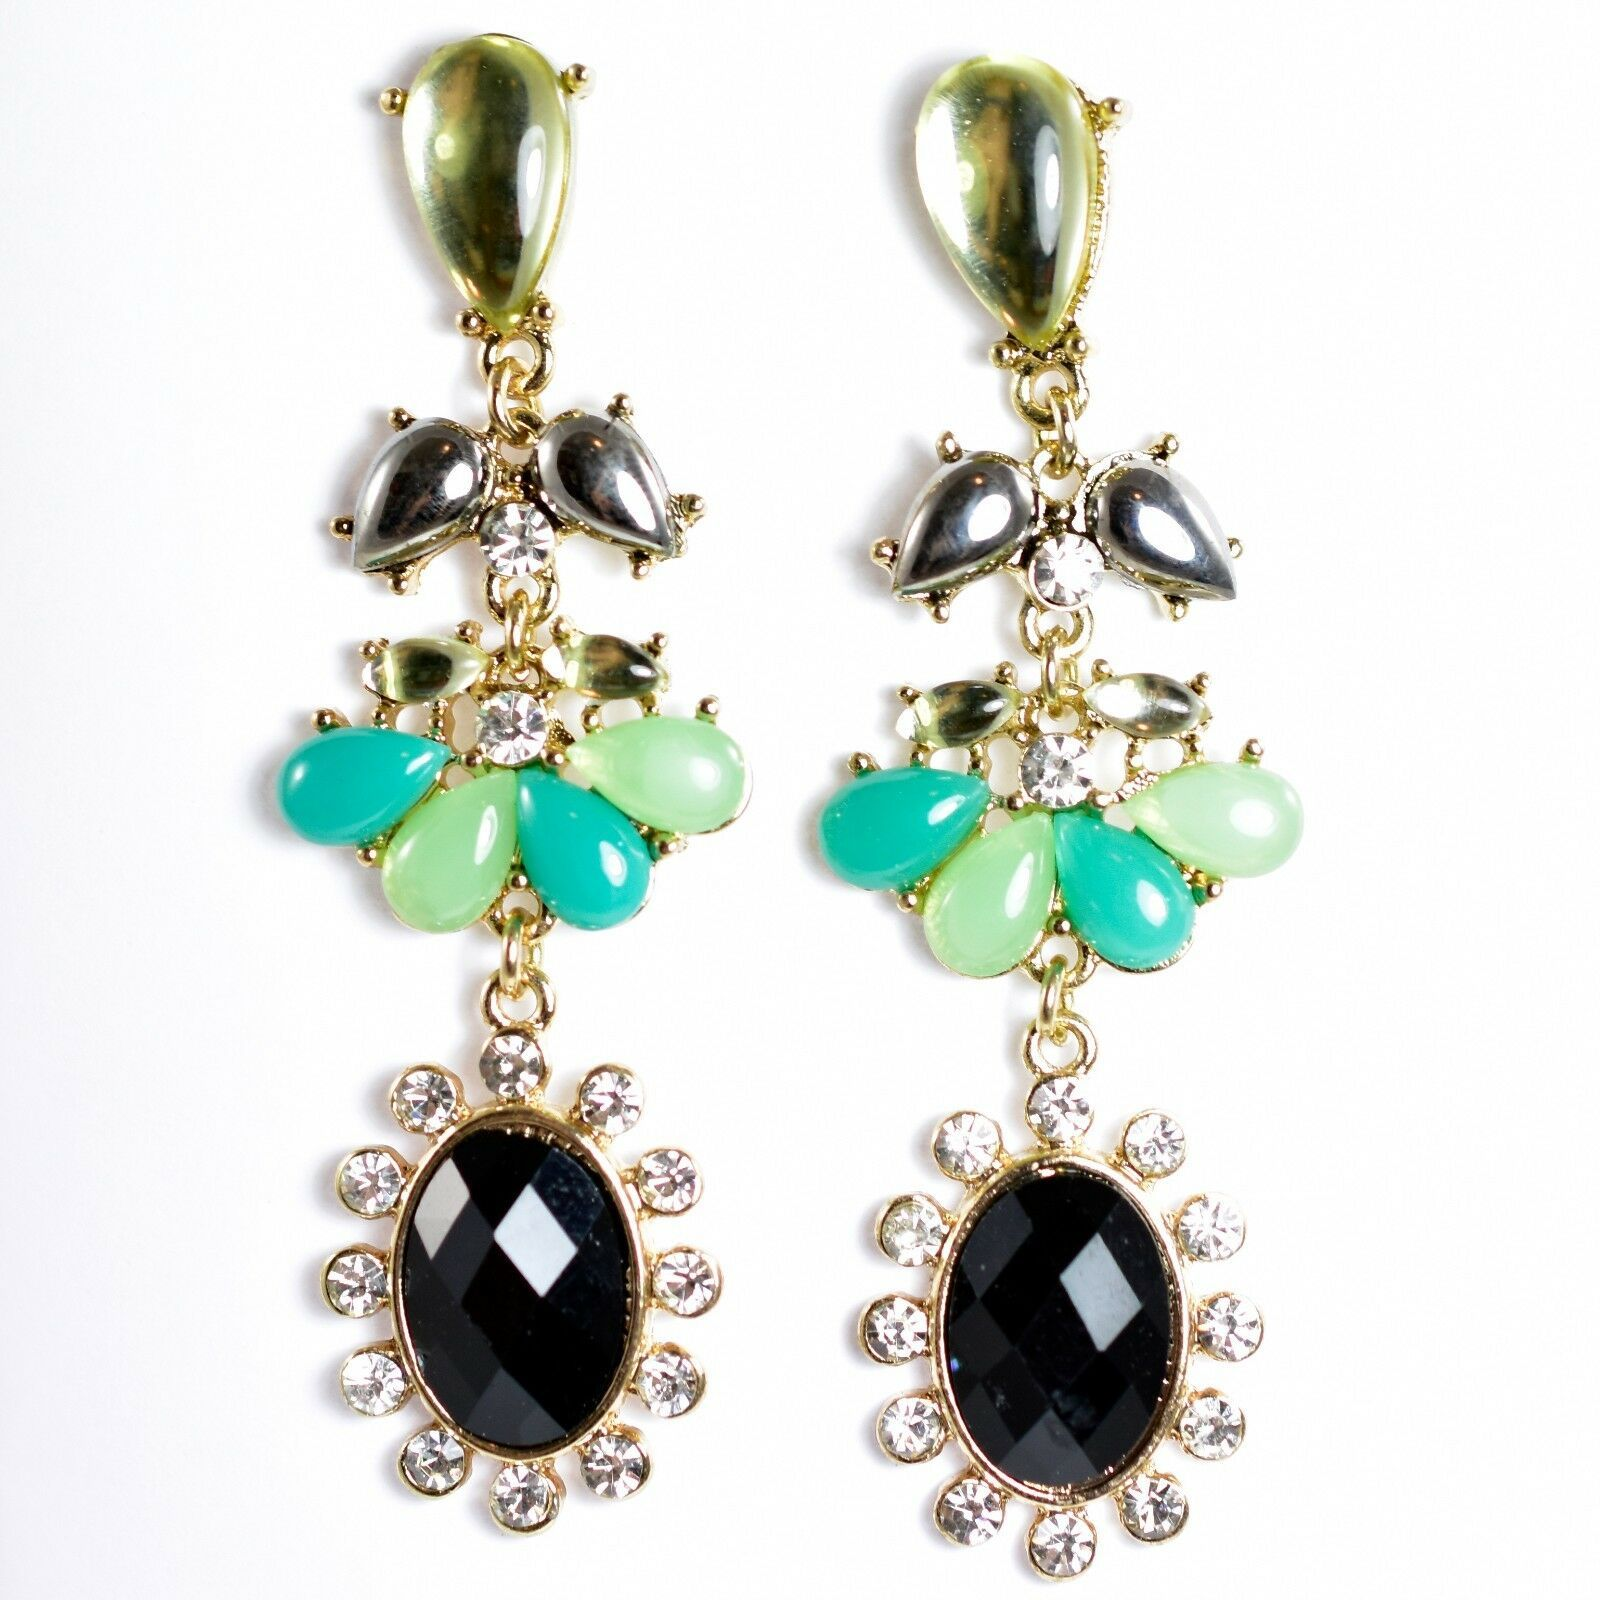 "Mode Mint Green & Black Lucite Bead 2.5"" Drop Post Dangle Earrings New with Tag"